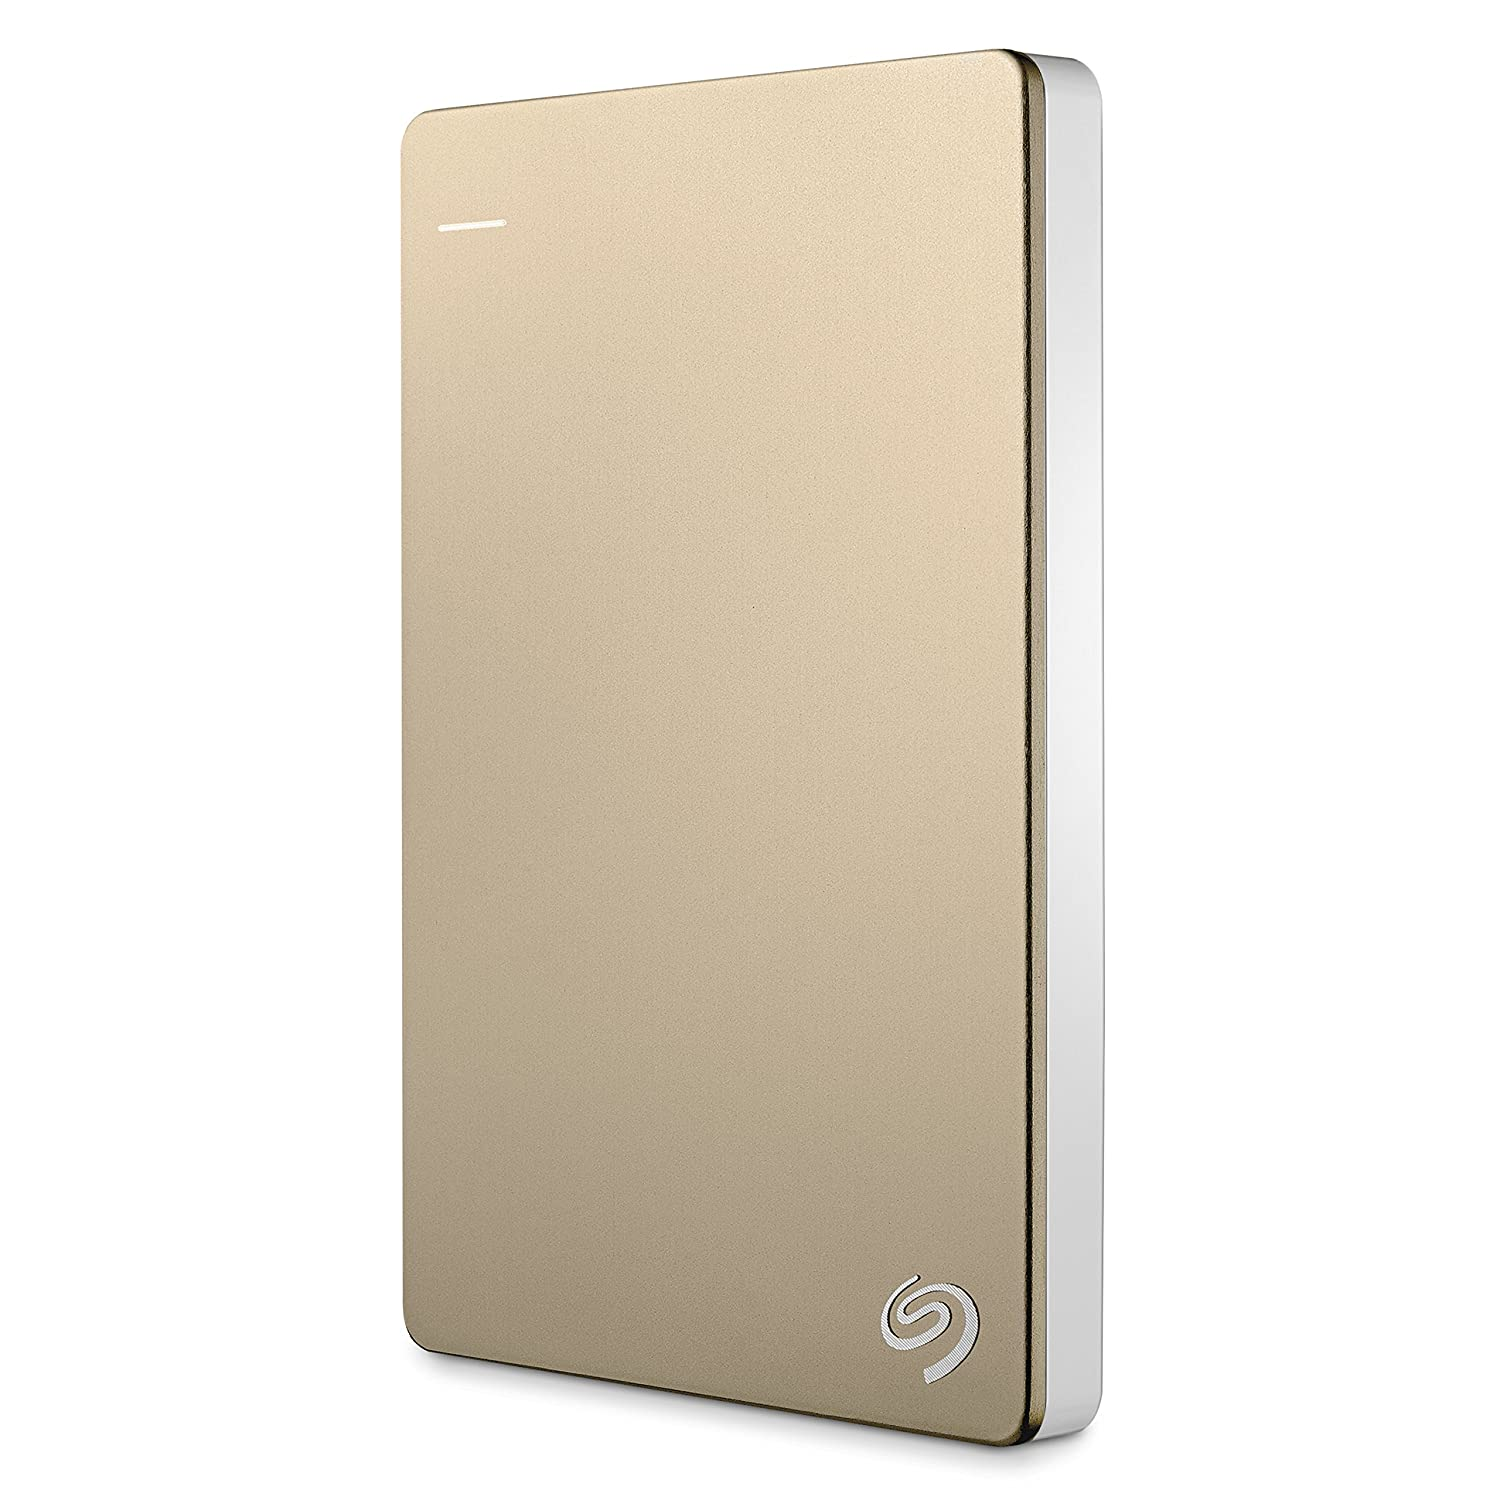 Seagate Backup Plus Slim 2TB Portable External Hard Drive with Mobile Device Backup USB 3.0 (Gold) STDR2000307